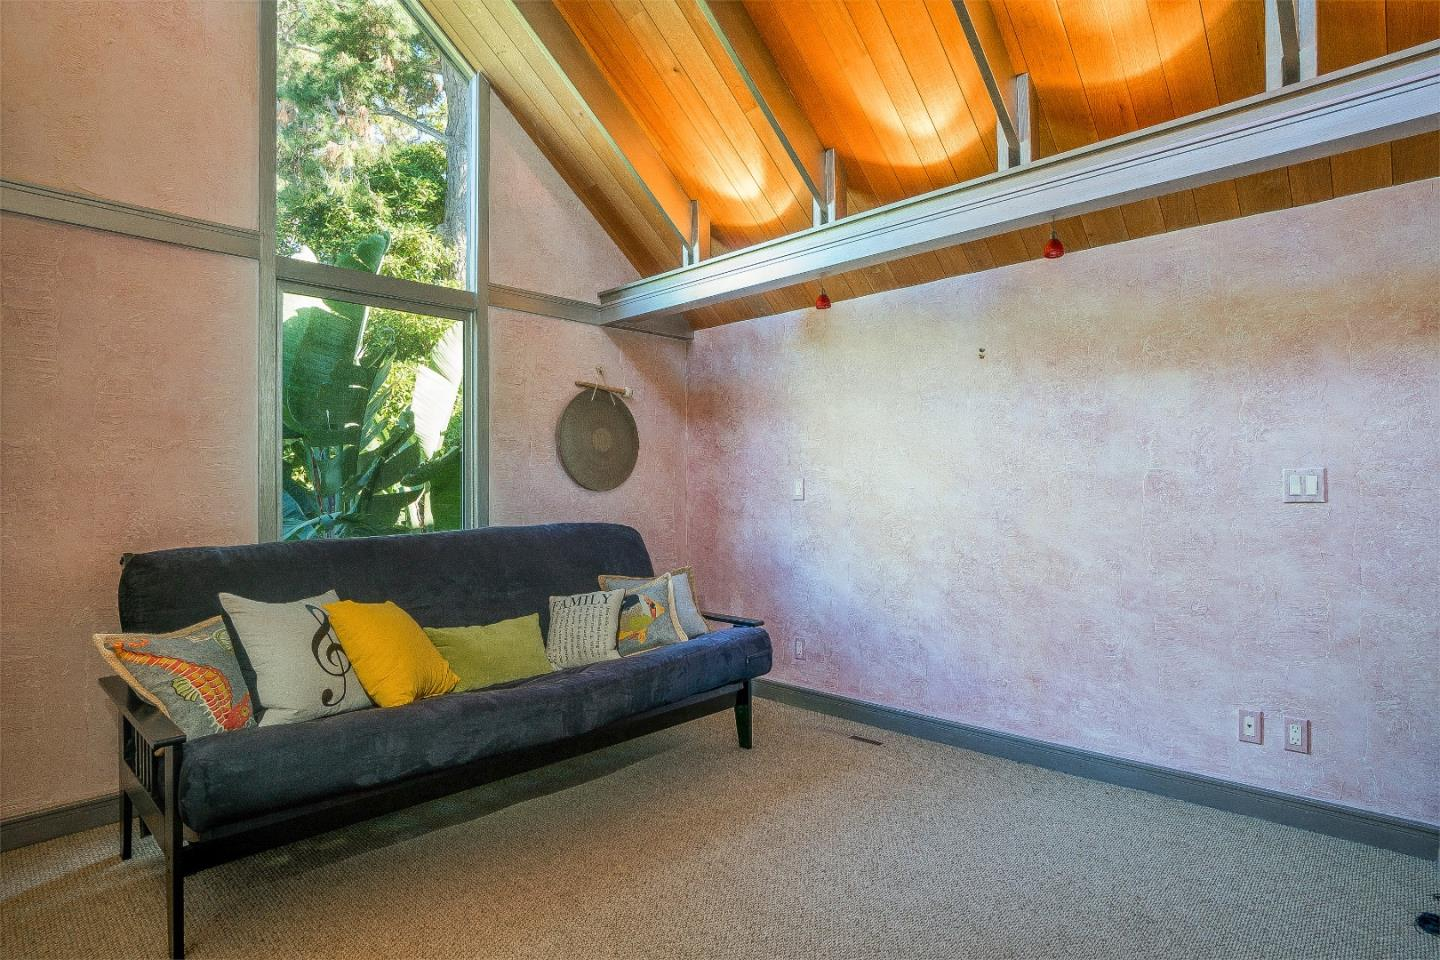 0 Fraser Way 2 NE of Camino Real Carmel, CA 93923 - MLS #: ML81709109